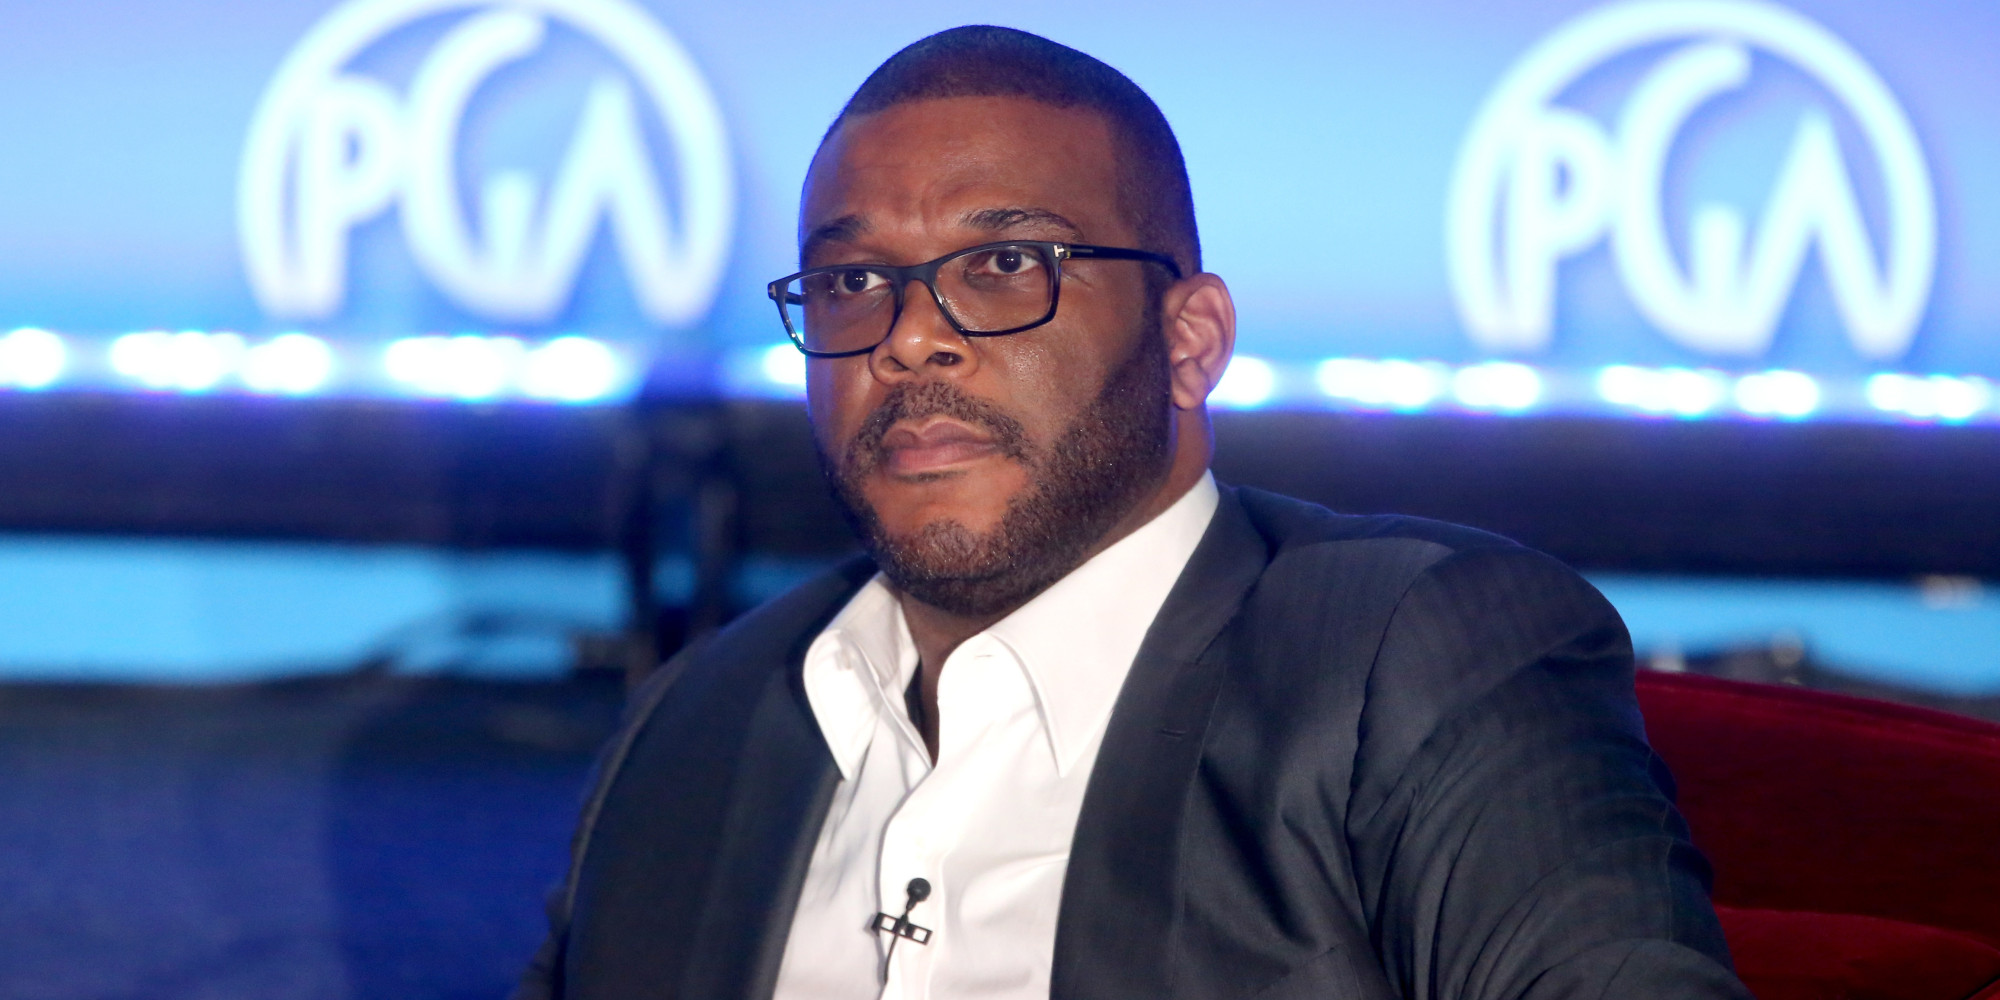 Tyler Perry What Do You Do When You Think Prayer Is Not